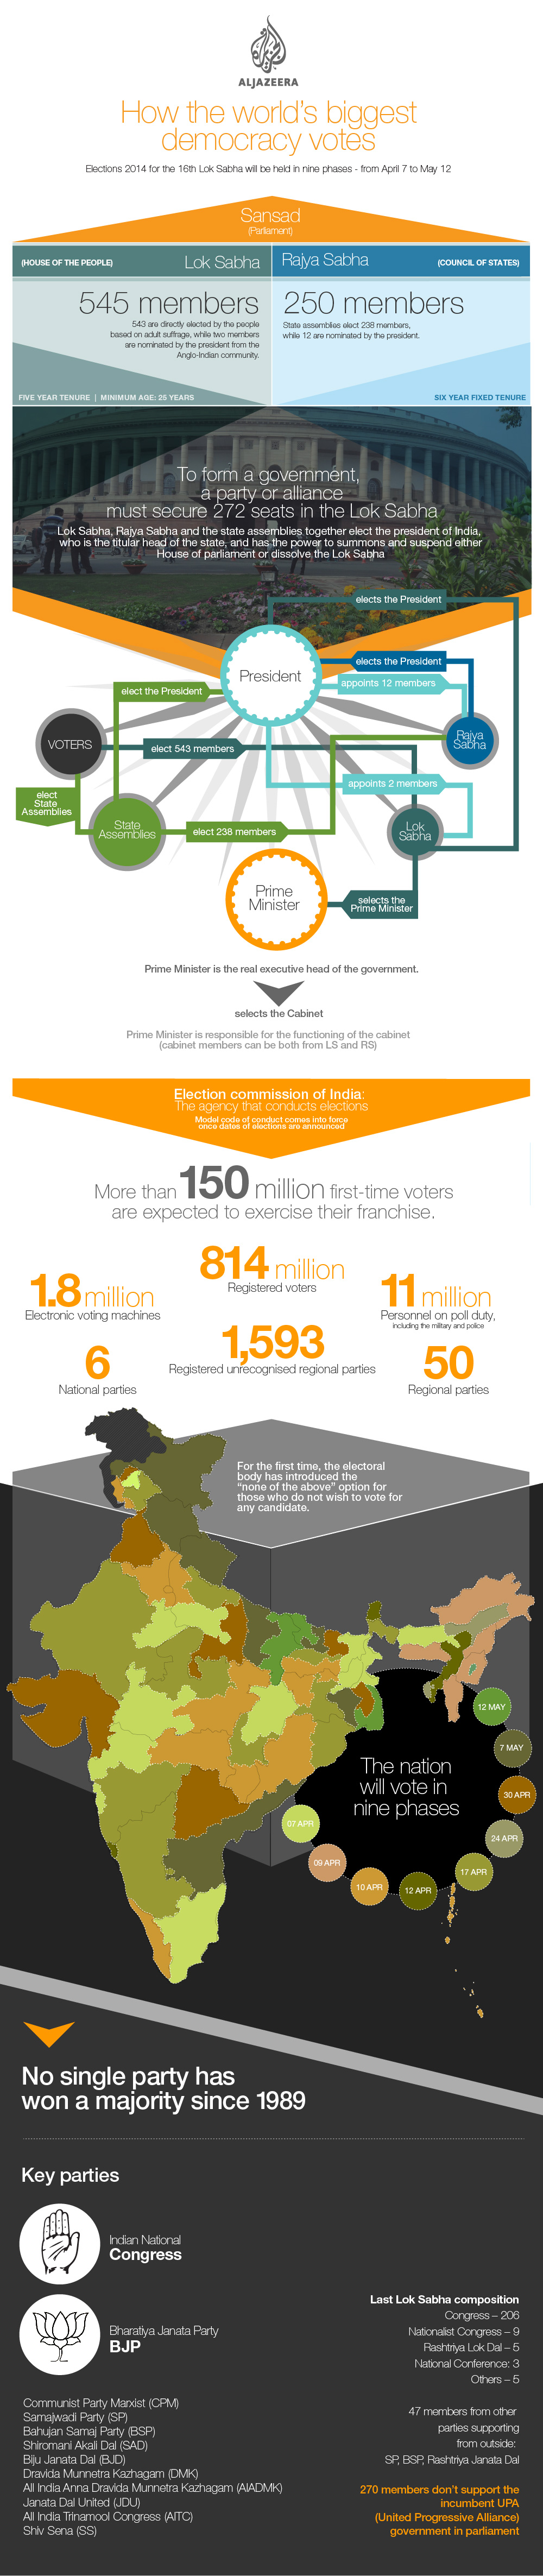 Everything you should know about indian general election 2014 infographic